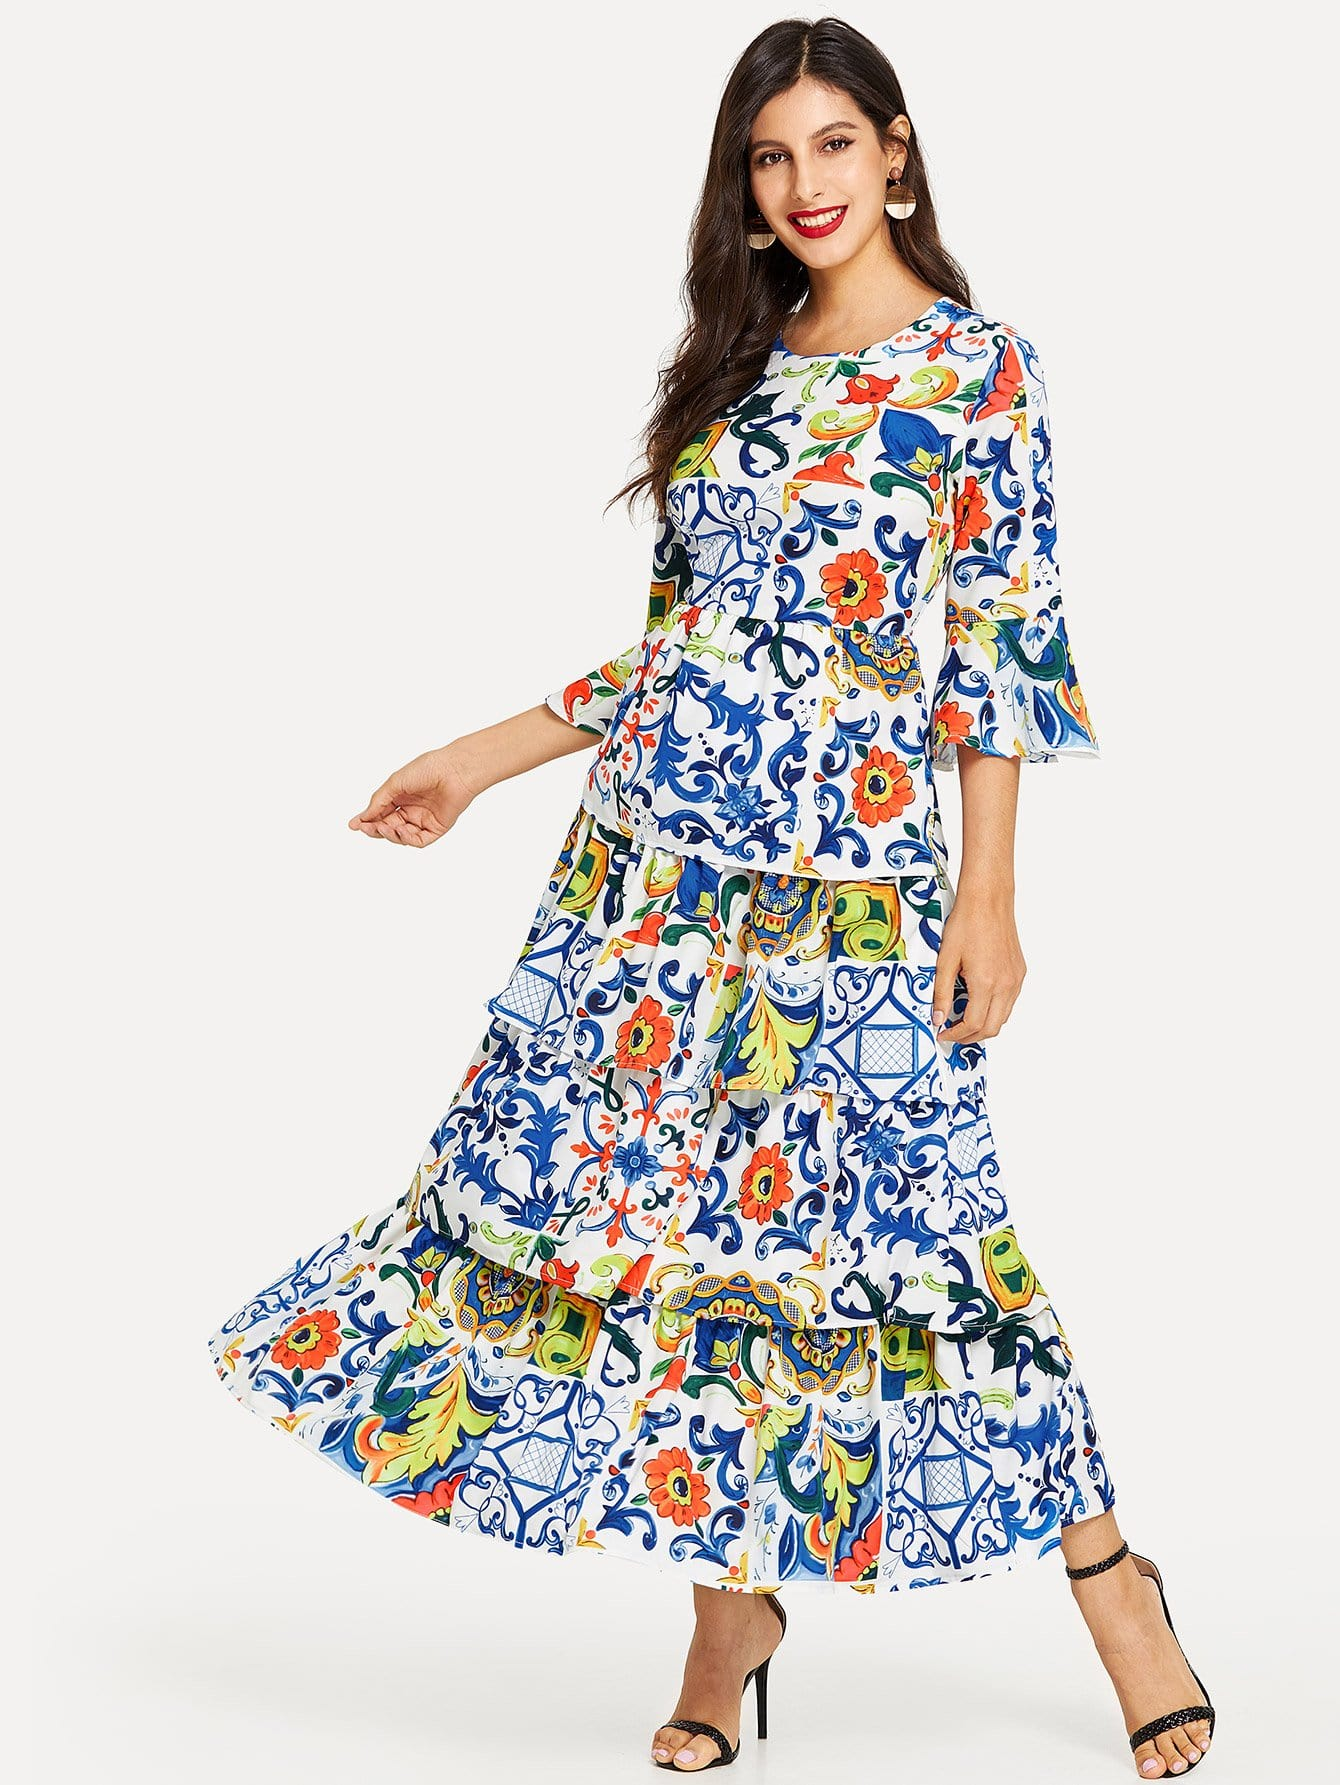 5167dcf8edfea Bell Sleeve Floral Tiered Layered Dress EmmaCloth-Women Fast ...